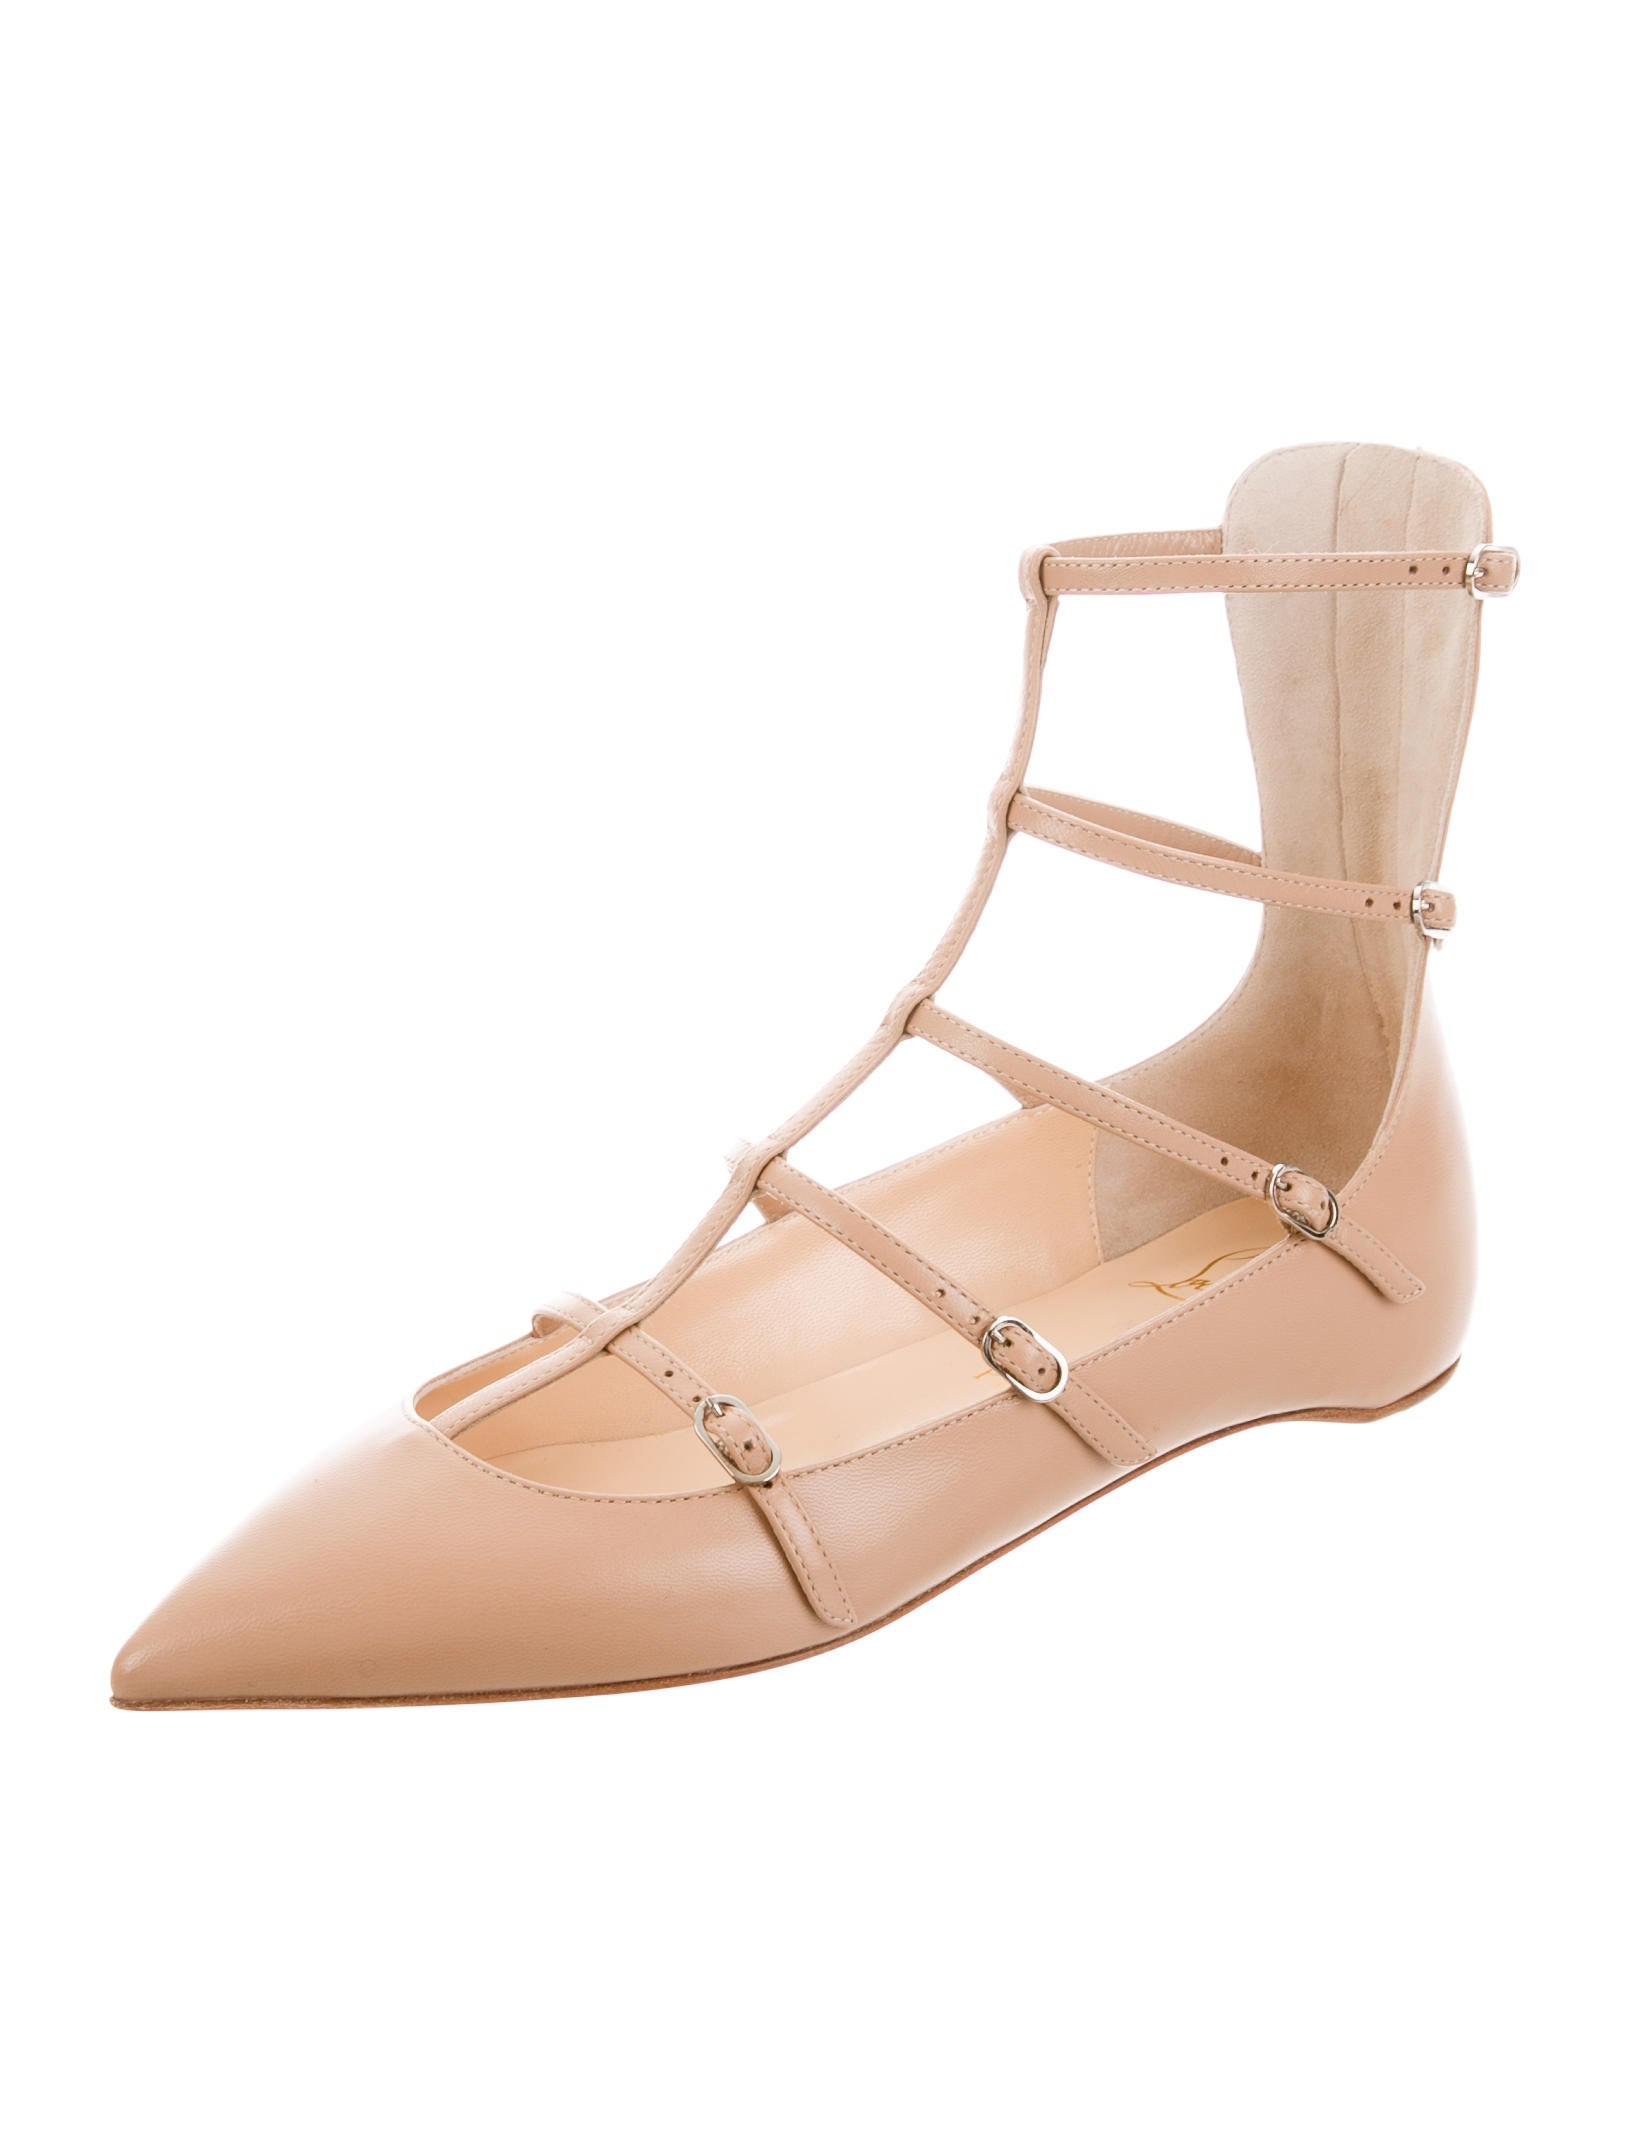 Christian Louboutin Toerless Leather Flats w/ Tags buy cheap good selling cheap sale pre order k0zV30